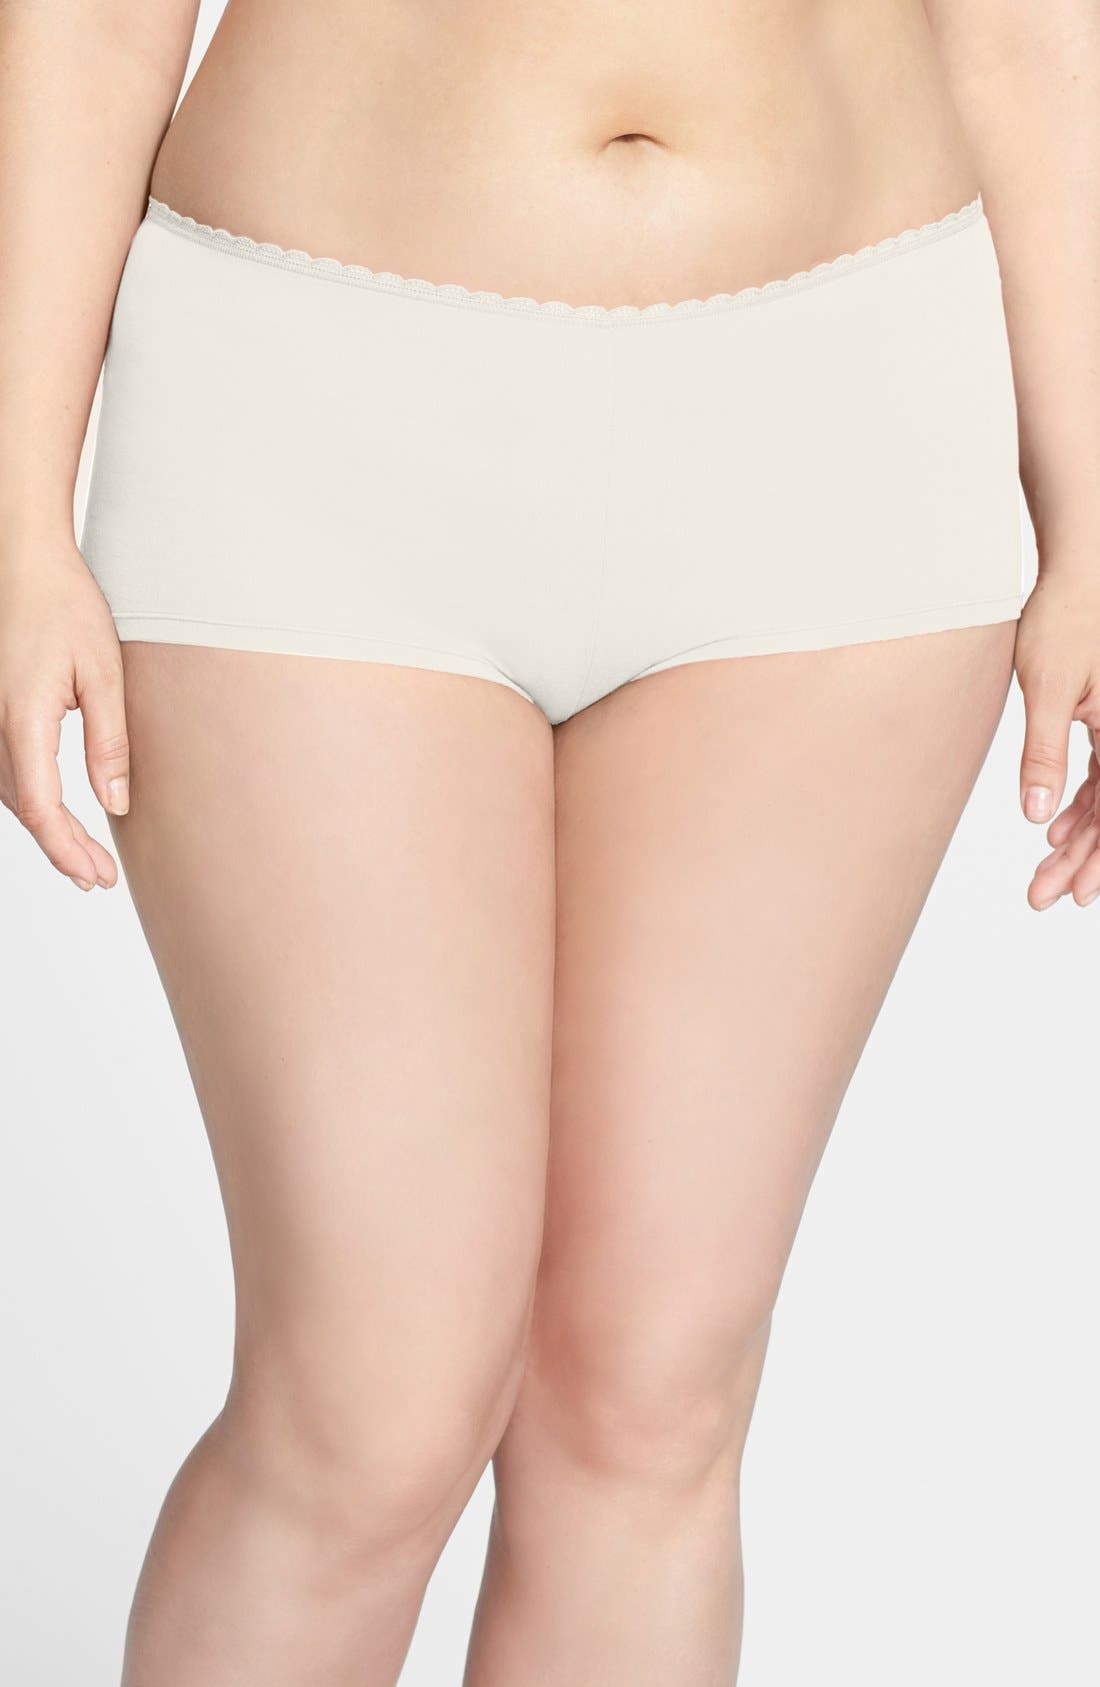 Main Image - Nordstrom Cotton Blend Boyshorts (Plus Size) (3 for $25)